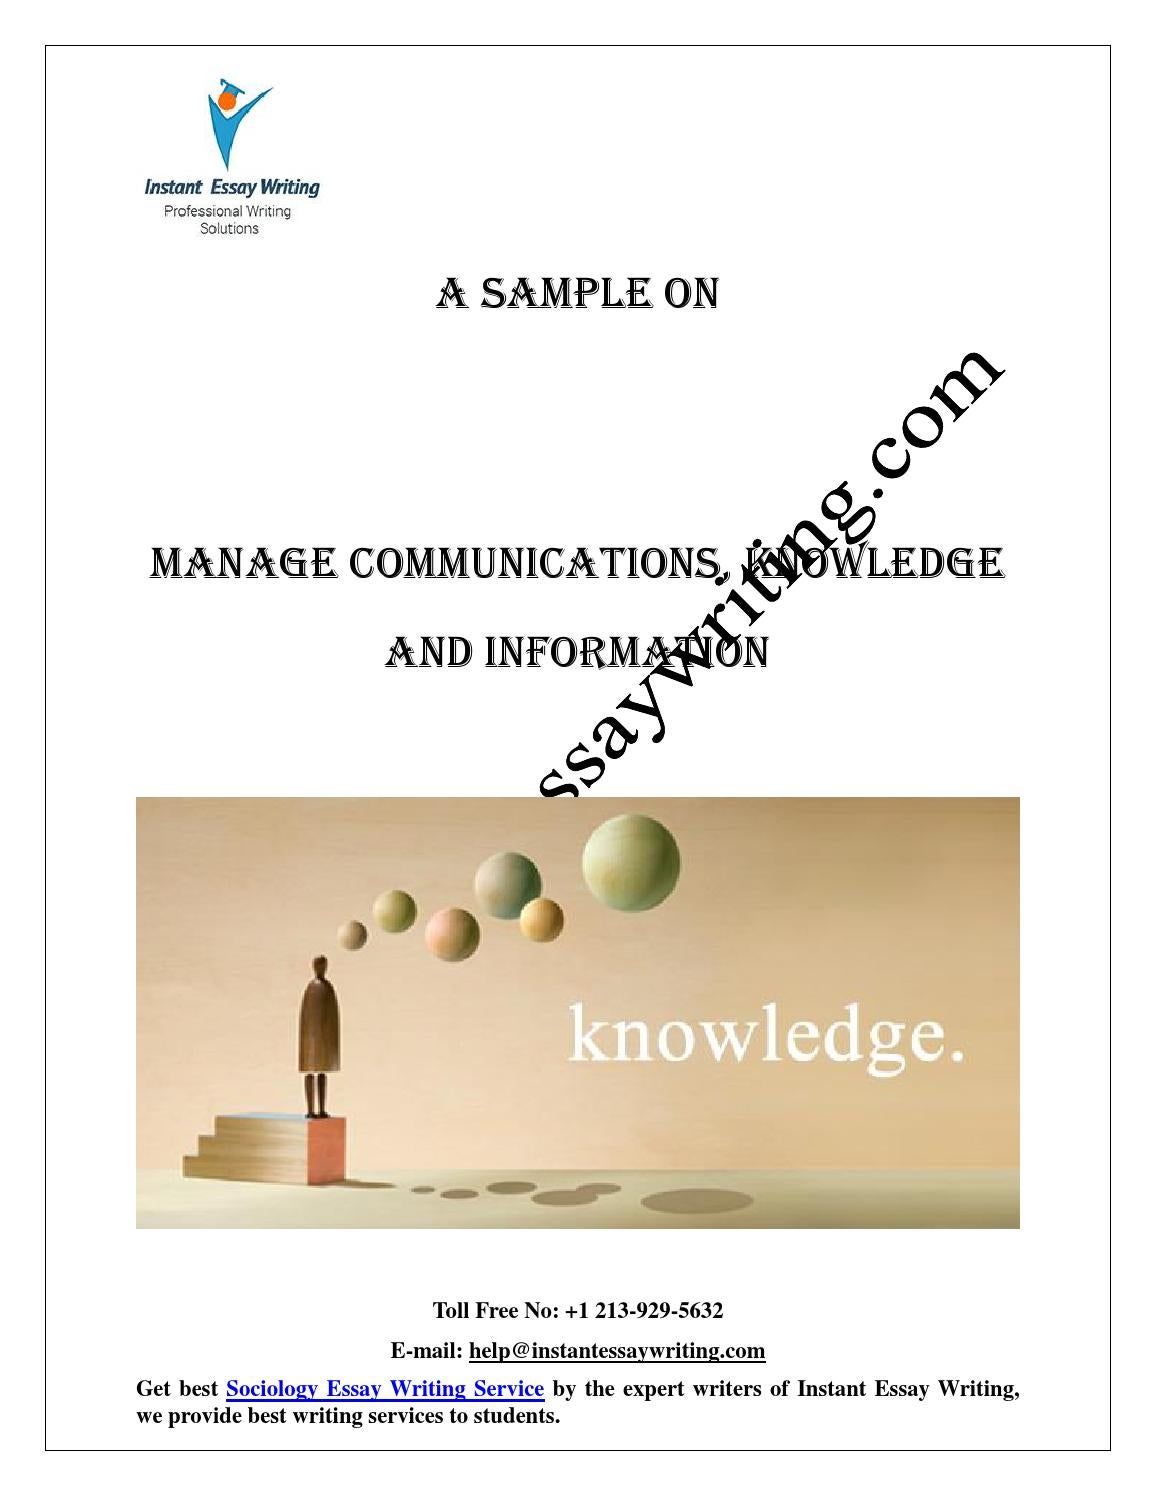 clc l6010950 managing communication knowledge and